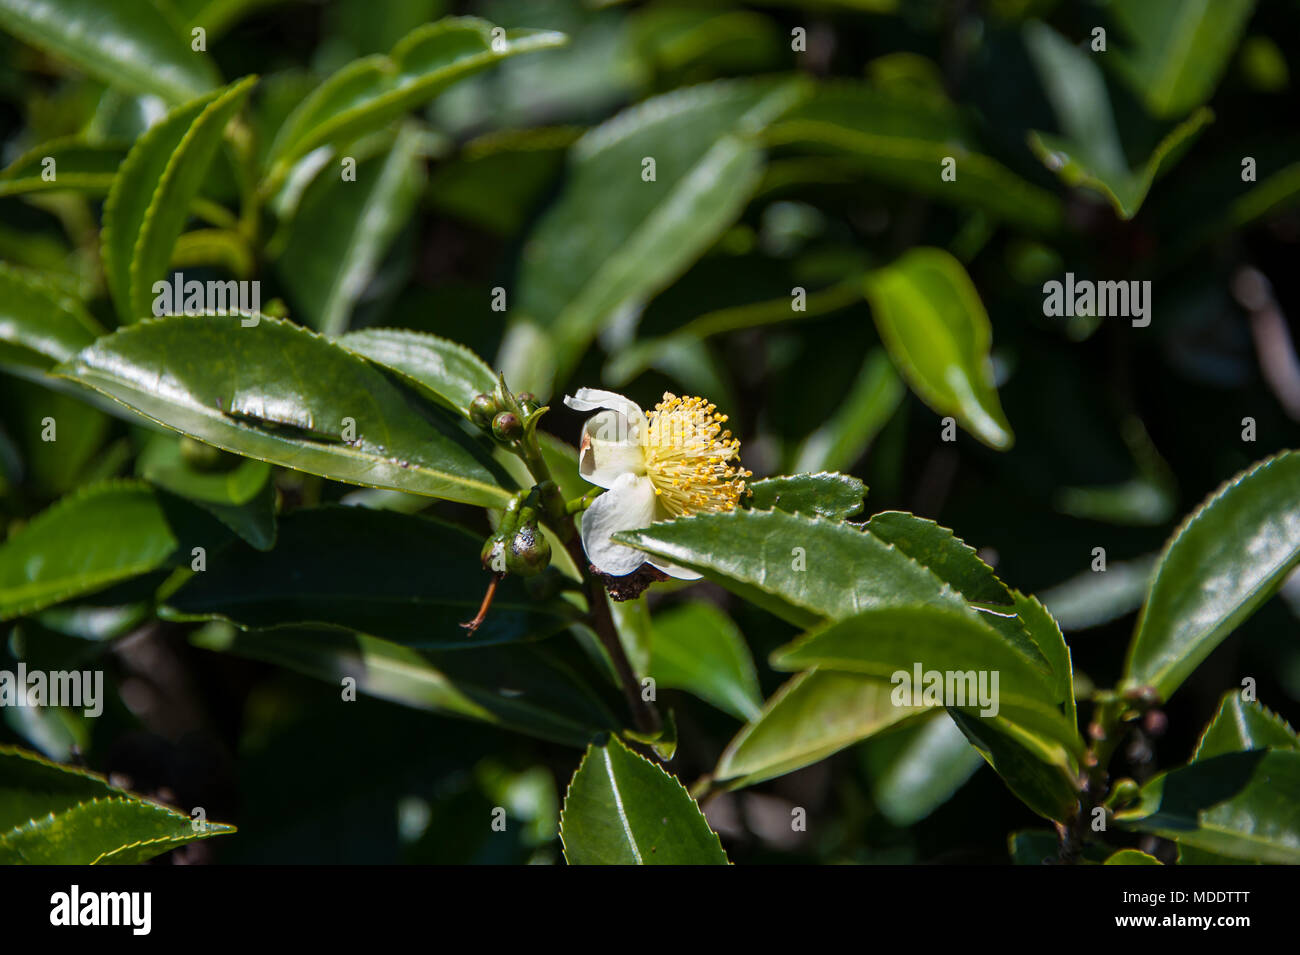 Close Up Of A Flowering Tea Shrub Camellia Sinensis White Flower